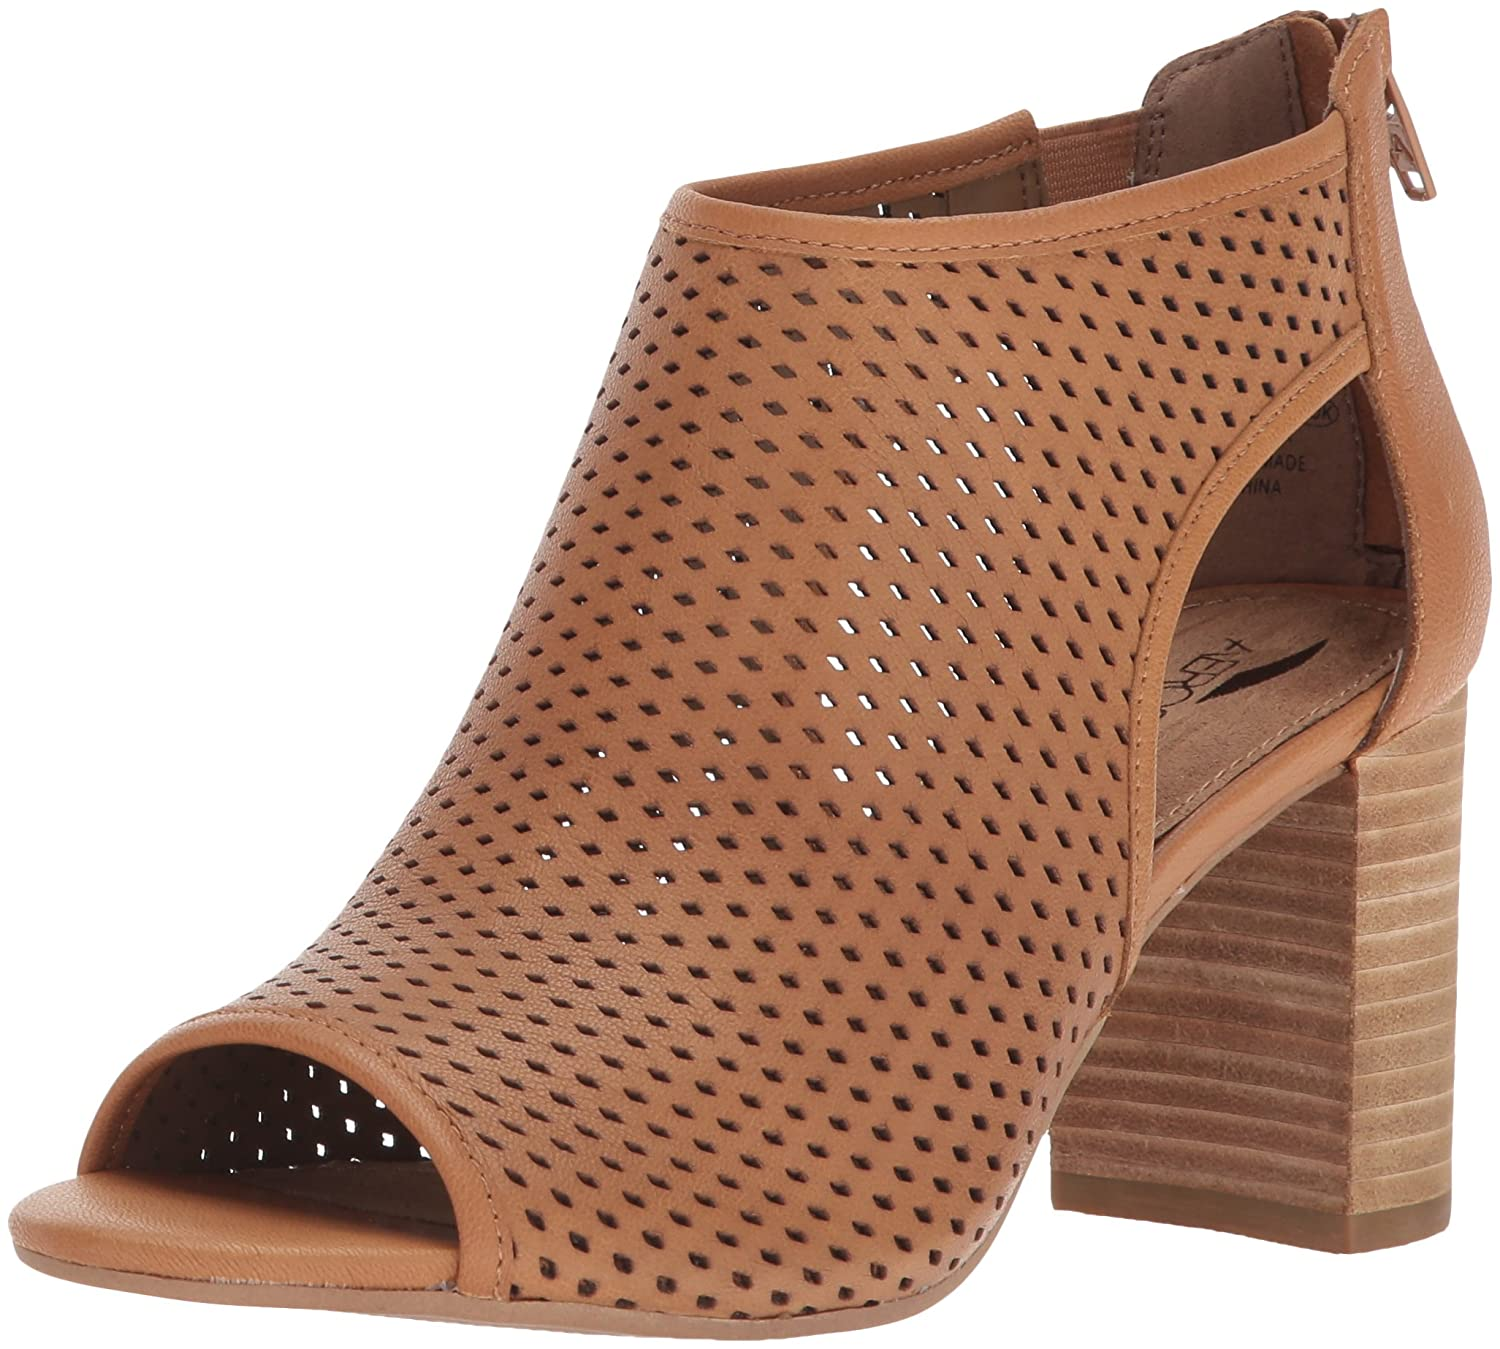 Aerosoles Women's High Frequency Ankle Bootie B076NY6TVS 10.5 B(M) US|Dark Tan Leather